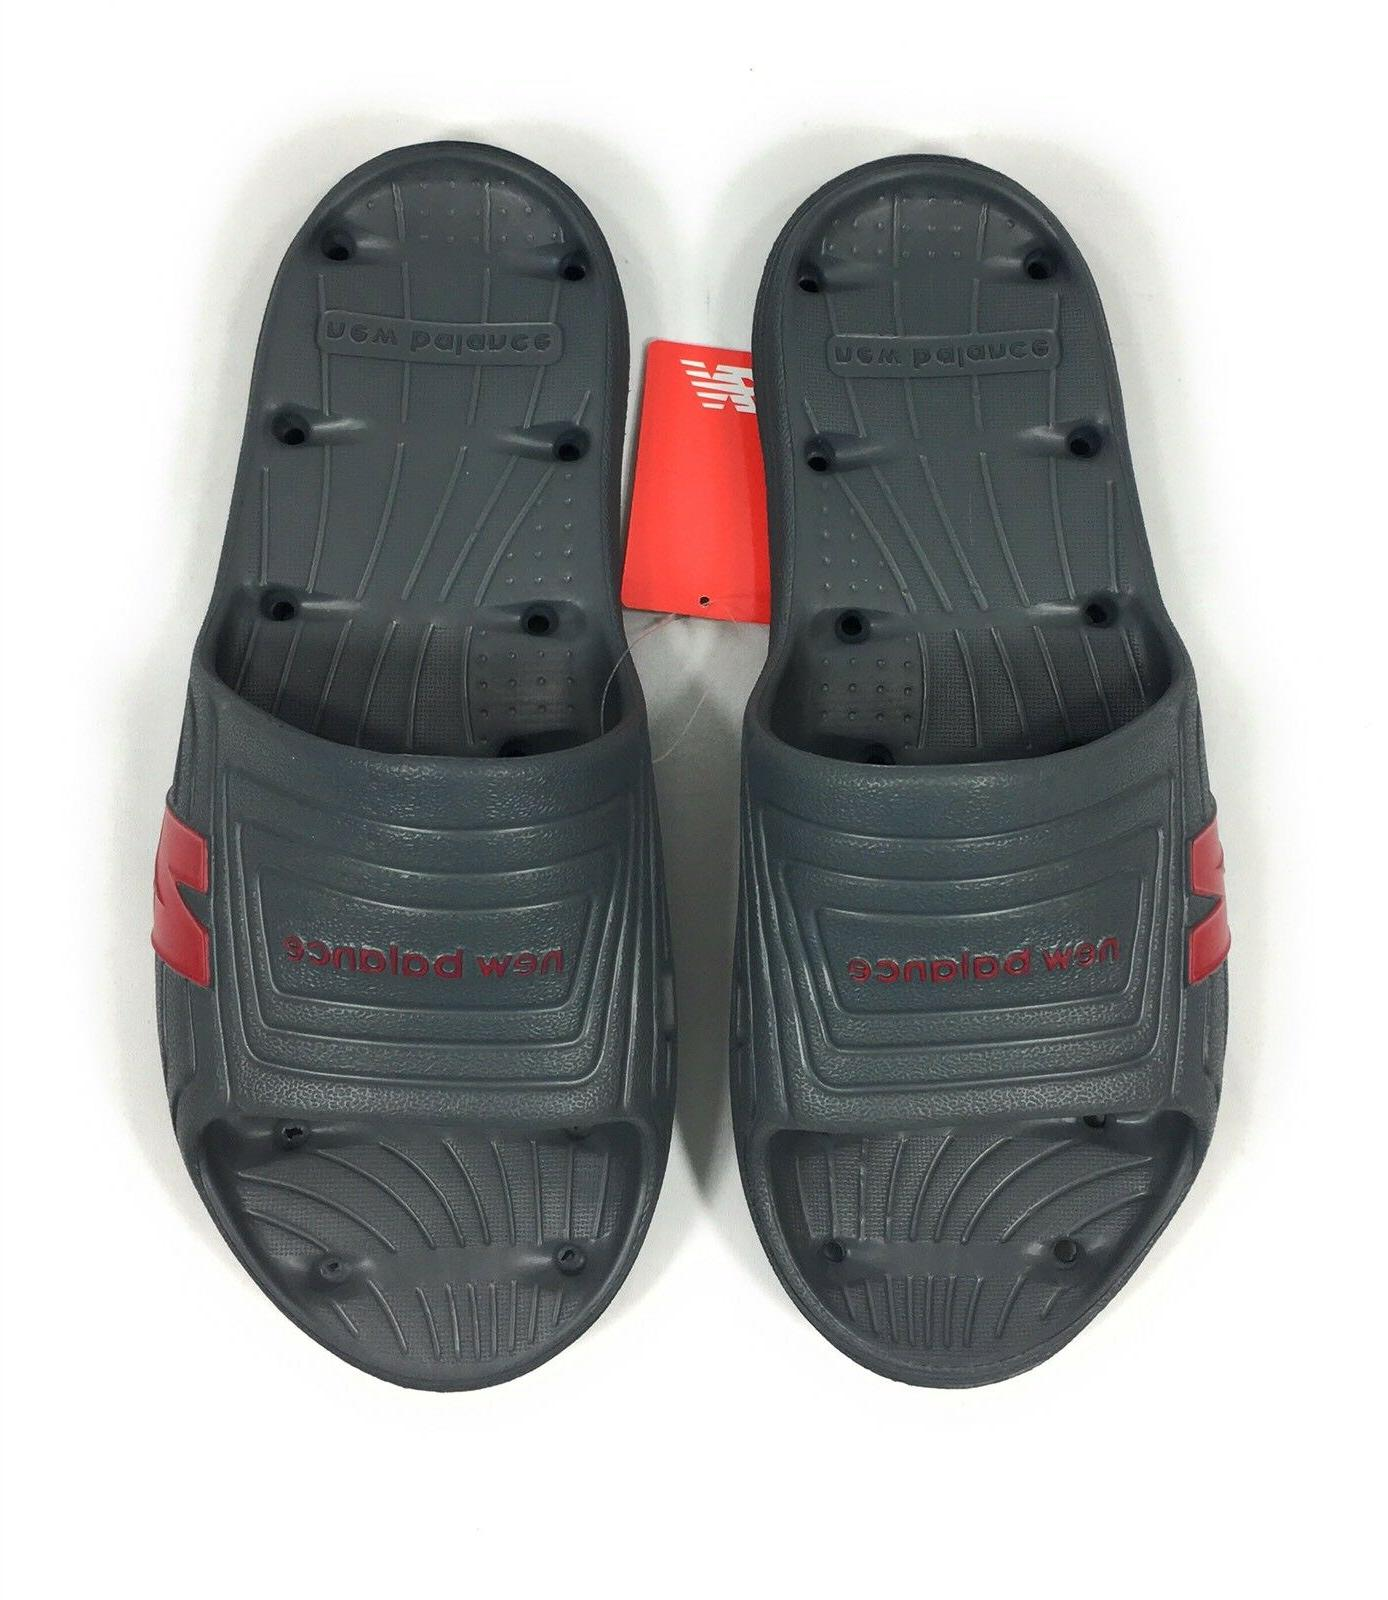 New Sandals Red